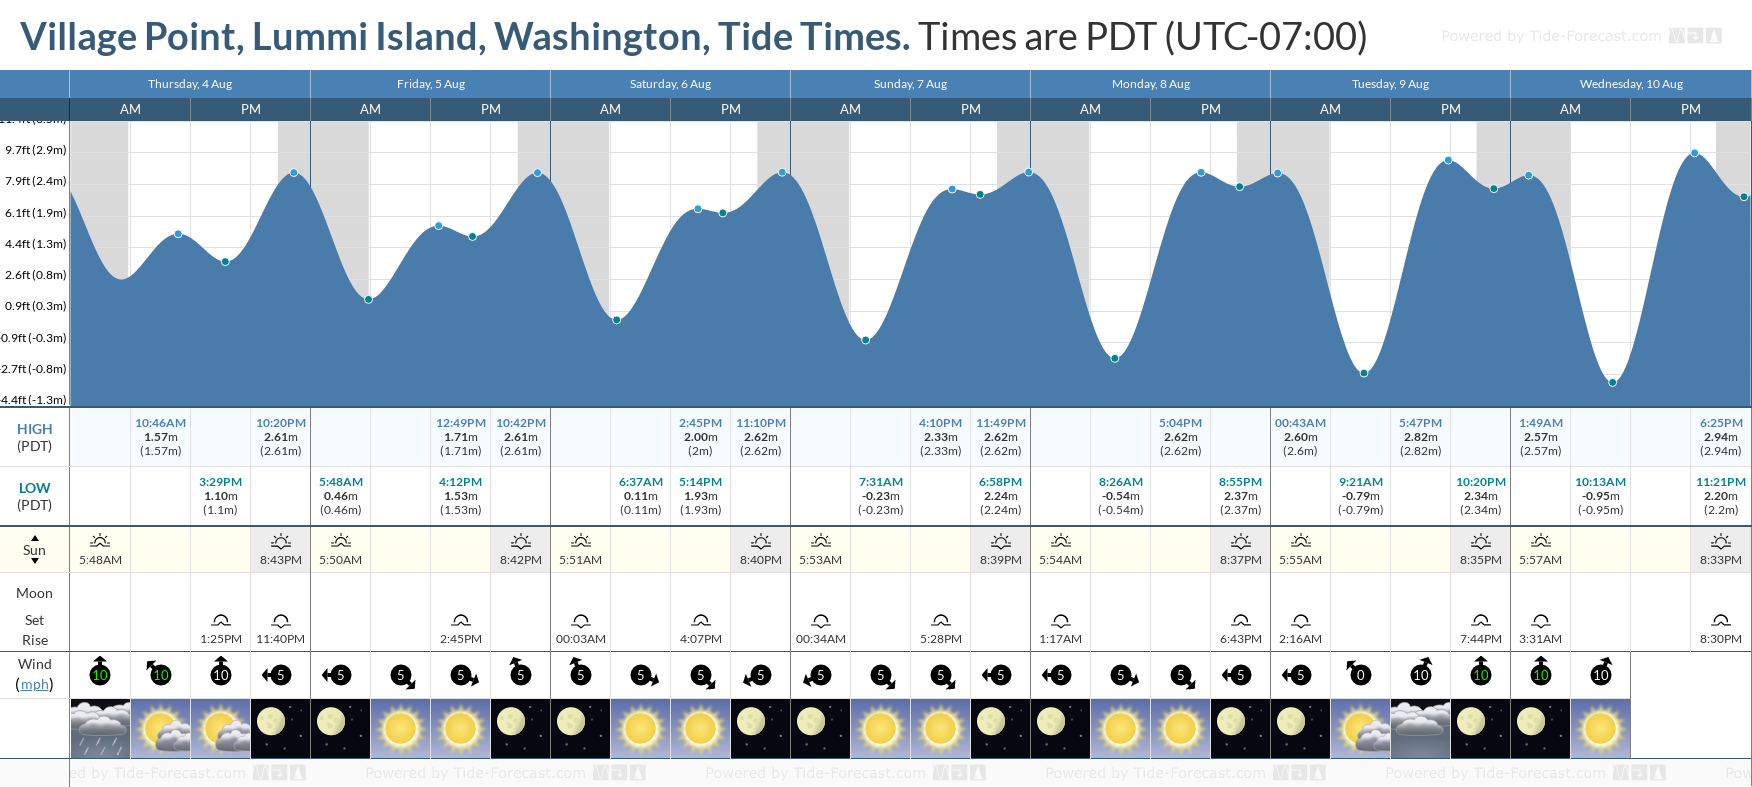 Village Point, Lummi Island, Washington Tide Chart including high and low tide tide times for the next 7 days